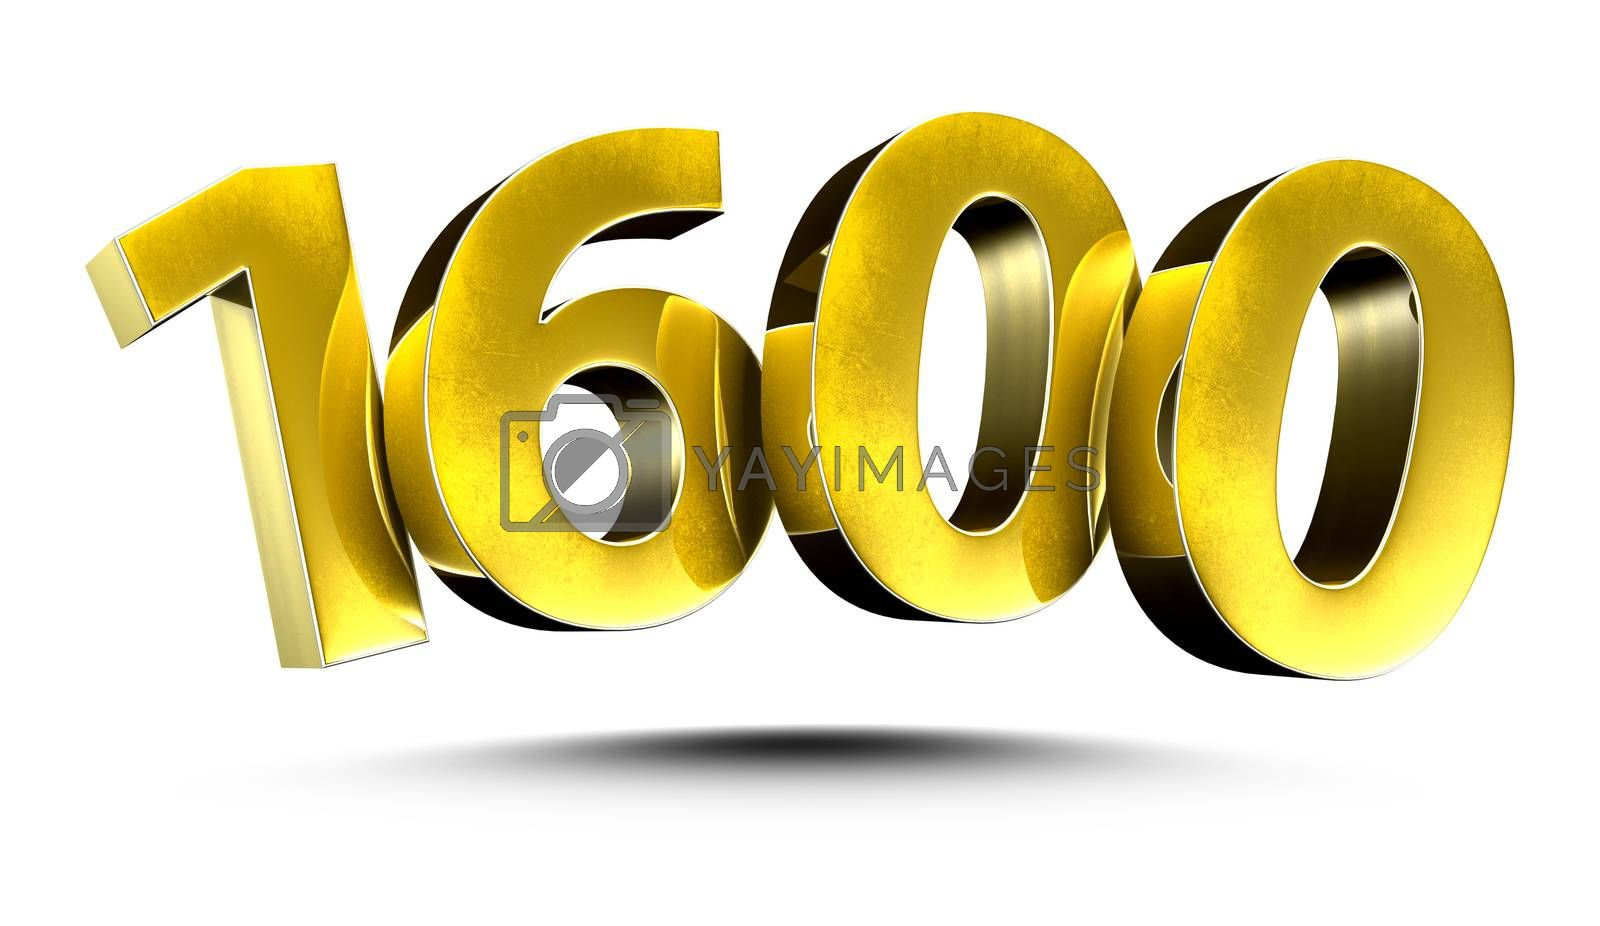 3D illustration Numbers 1600 Gold isolated on a white background.(with Clipping Path)